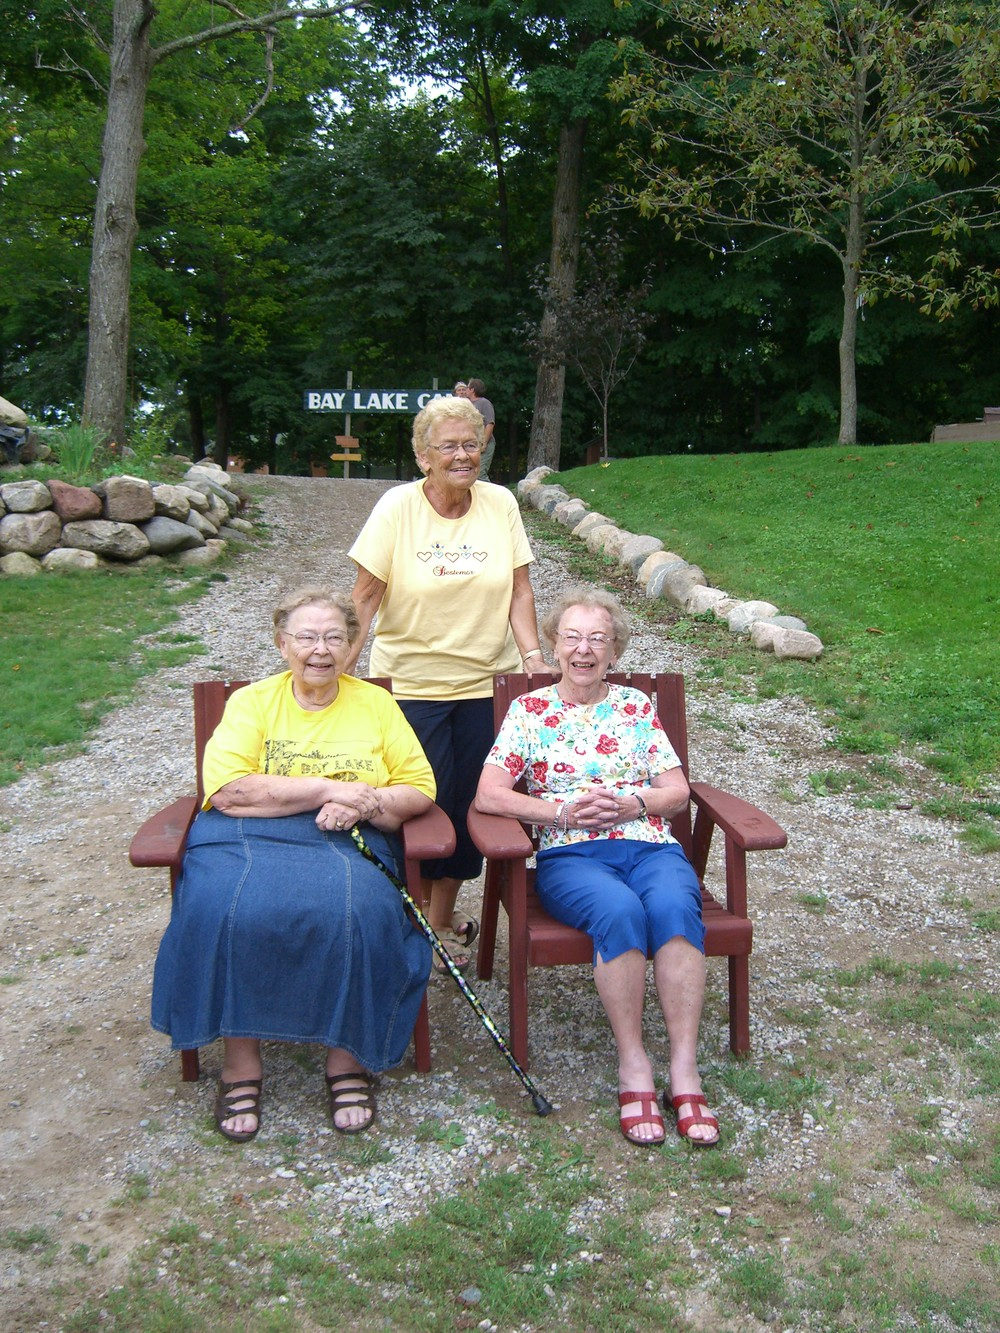 Aunt Essie, Aunt Connie, and Aunt Ruth....my mom's three sisters.